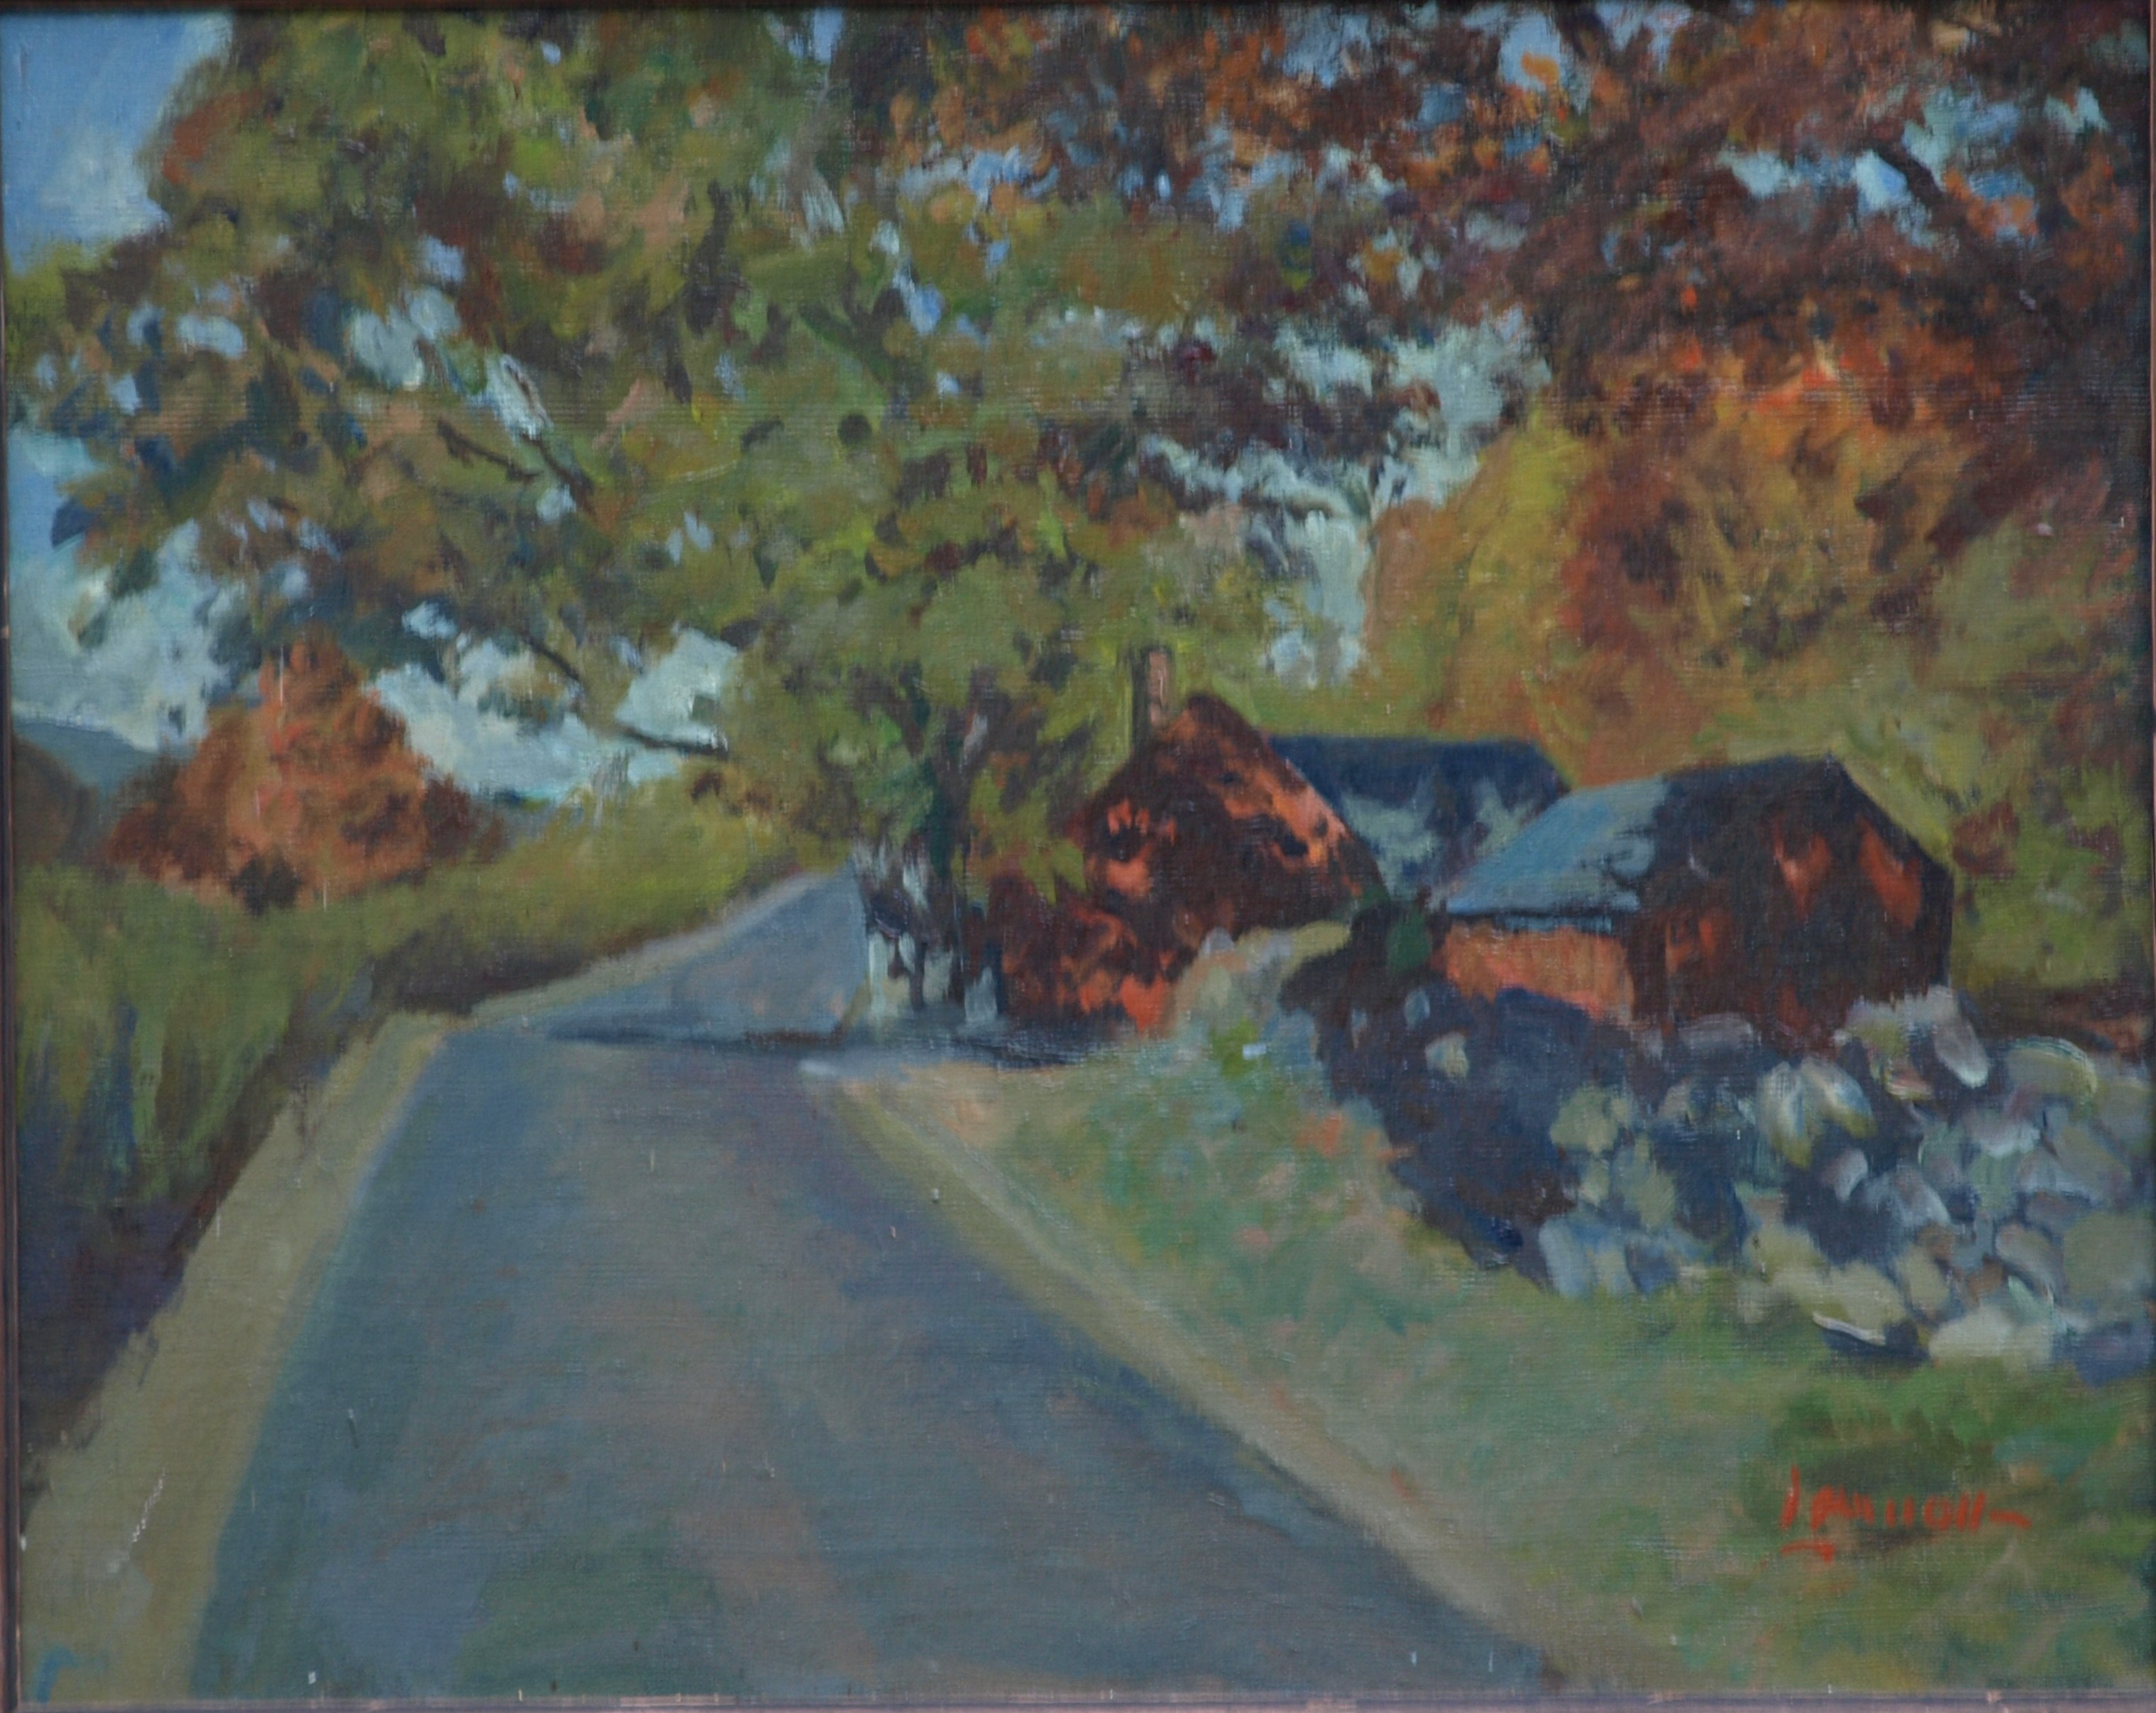 Brown's Forge, Oil on Canvas, 16 x 20 Inches, by Bernard Lennon, $450